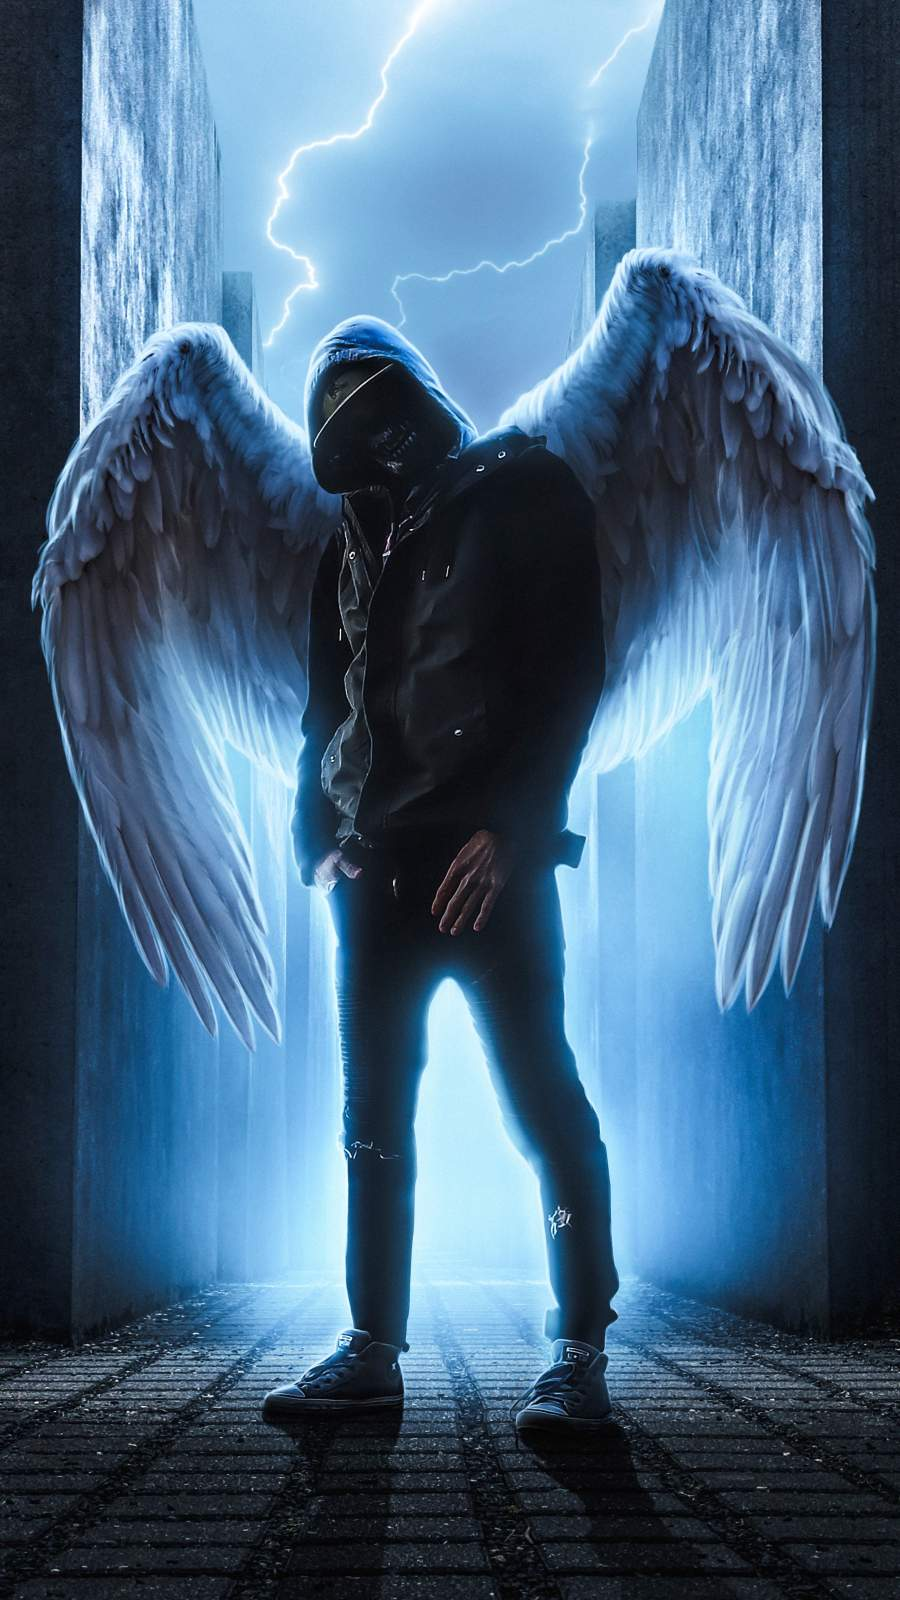 Angel of Hell iPhone Wallpaper - iPhone Wallpapers ...